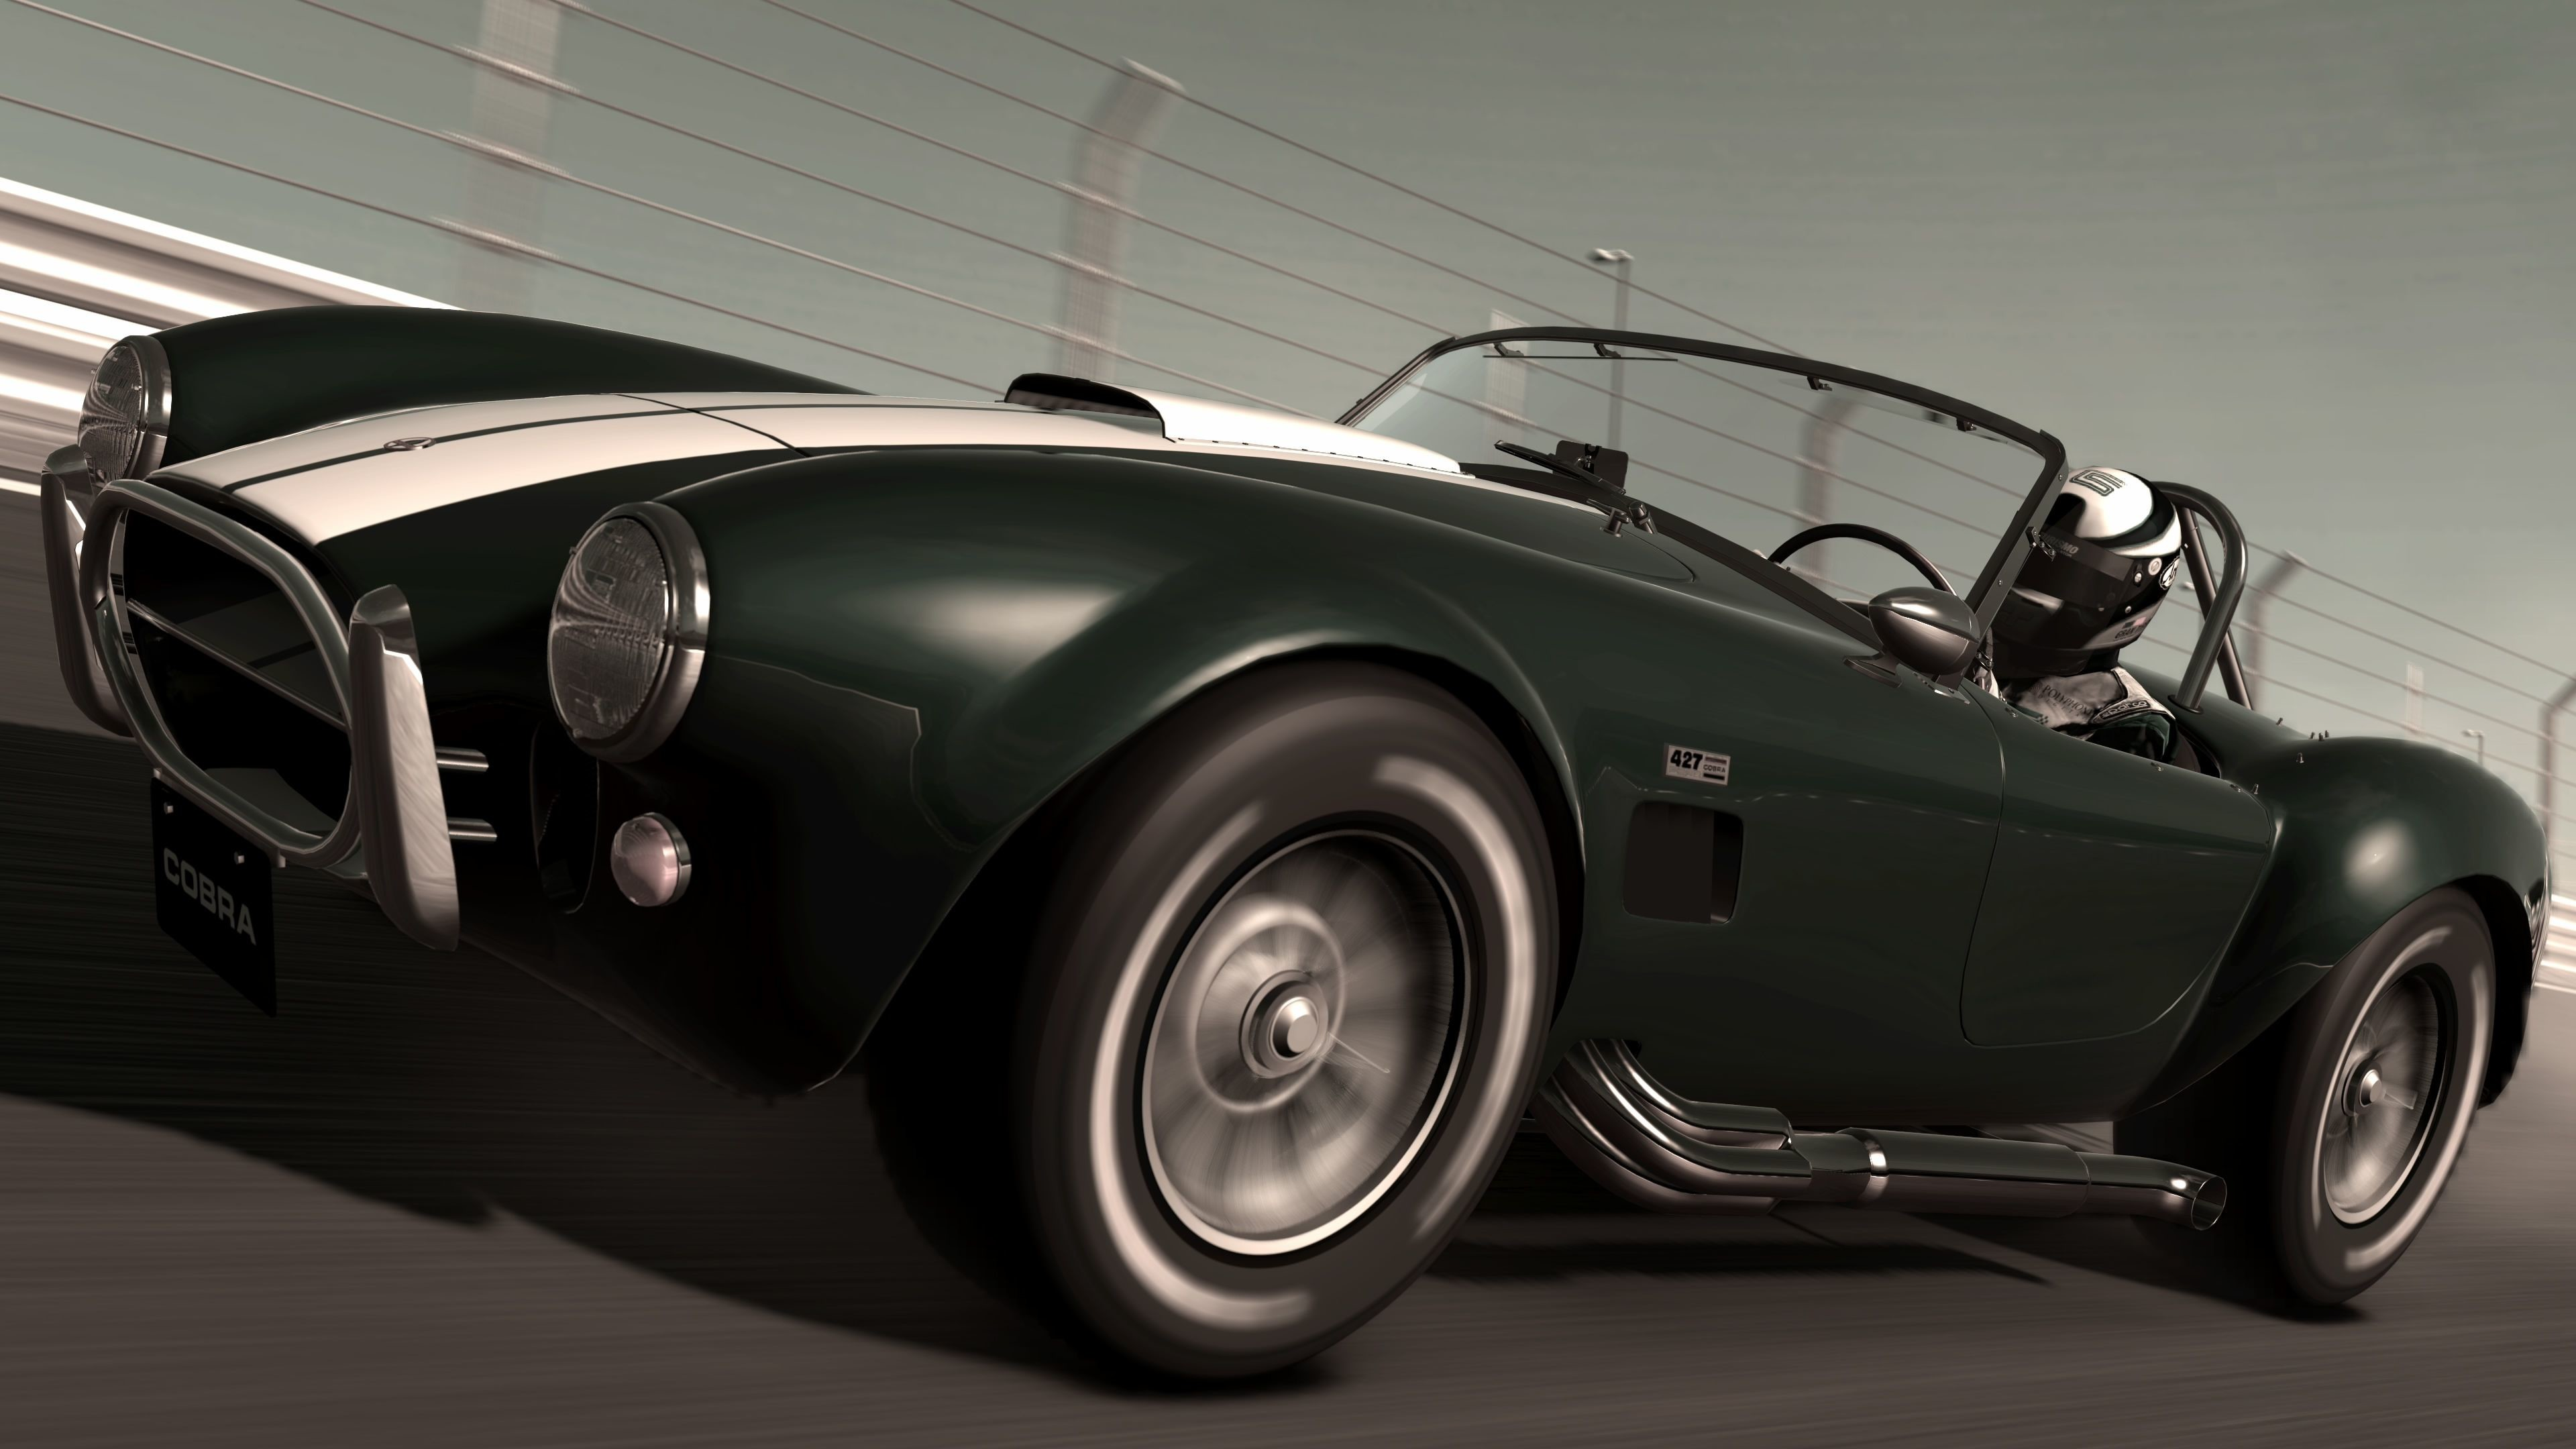 Shelby Cobra Wallpaper by Andrej Jewkes, GoldWallpapers